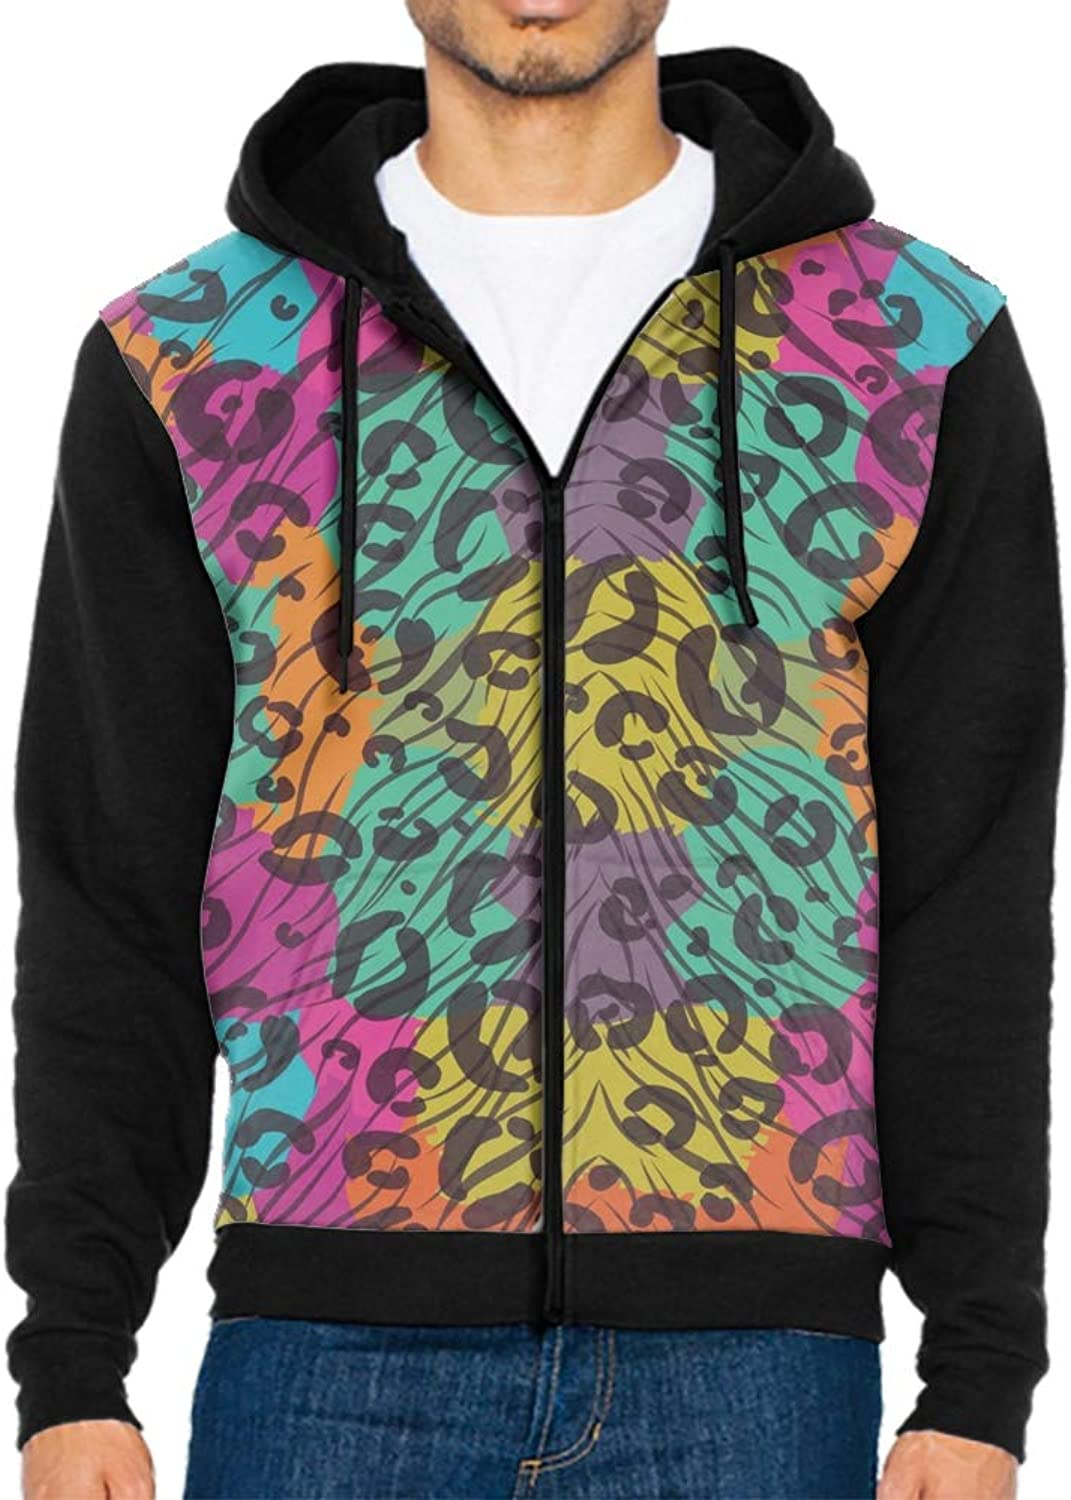 112ef31e7 Men's colorful Animal Print Zip Hoodie Camping Hooded Sweatshirt Outdoor Up  nxyqht3354-Sporting goods